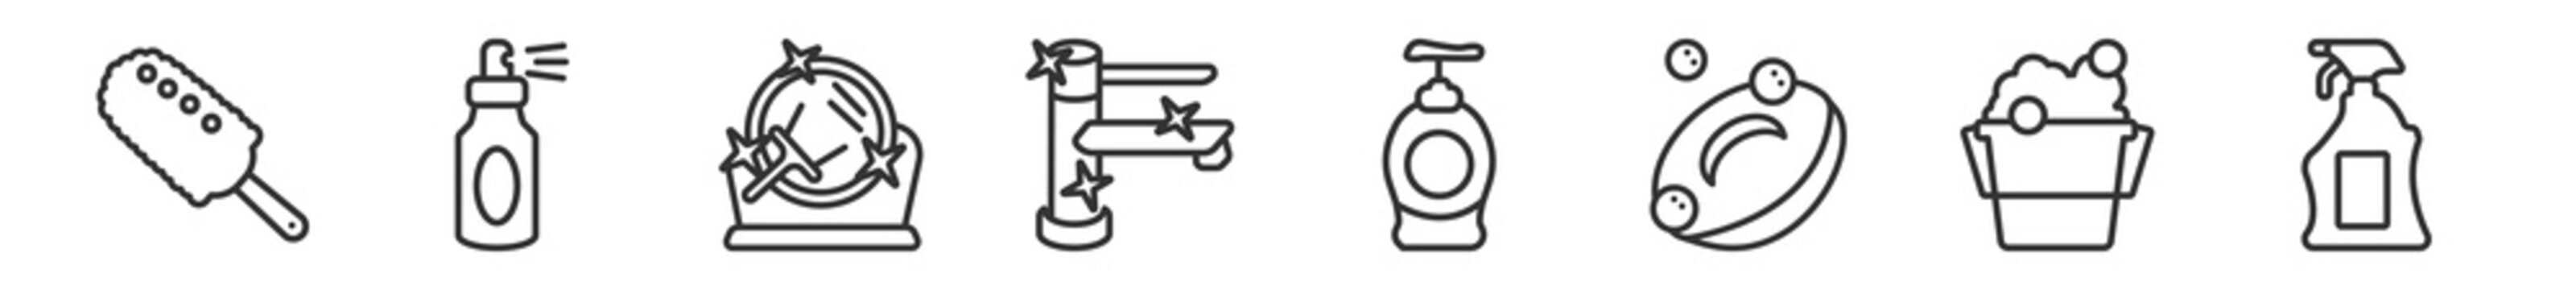 outline set of cleaning line icons. linear vector icons such as duster, wiping sprayer, mirror cleanin, faucet cleanin, hand soap, cleaning spray. vector illustration.